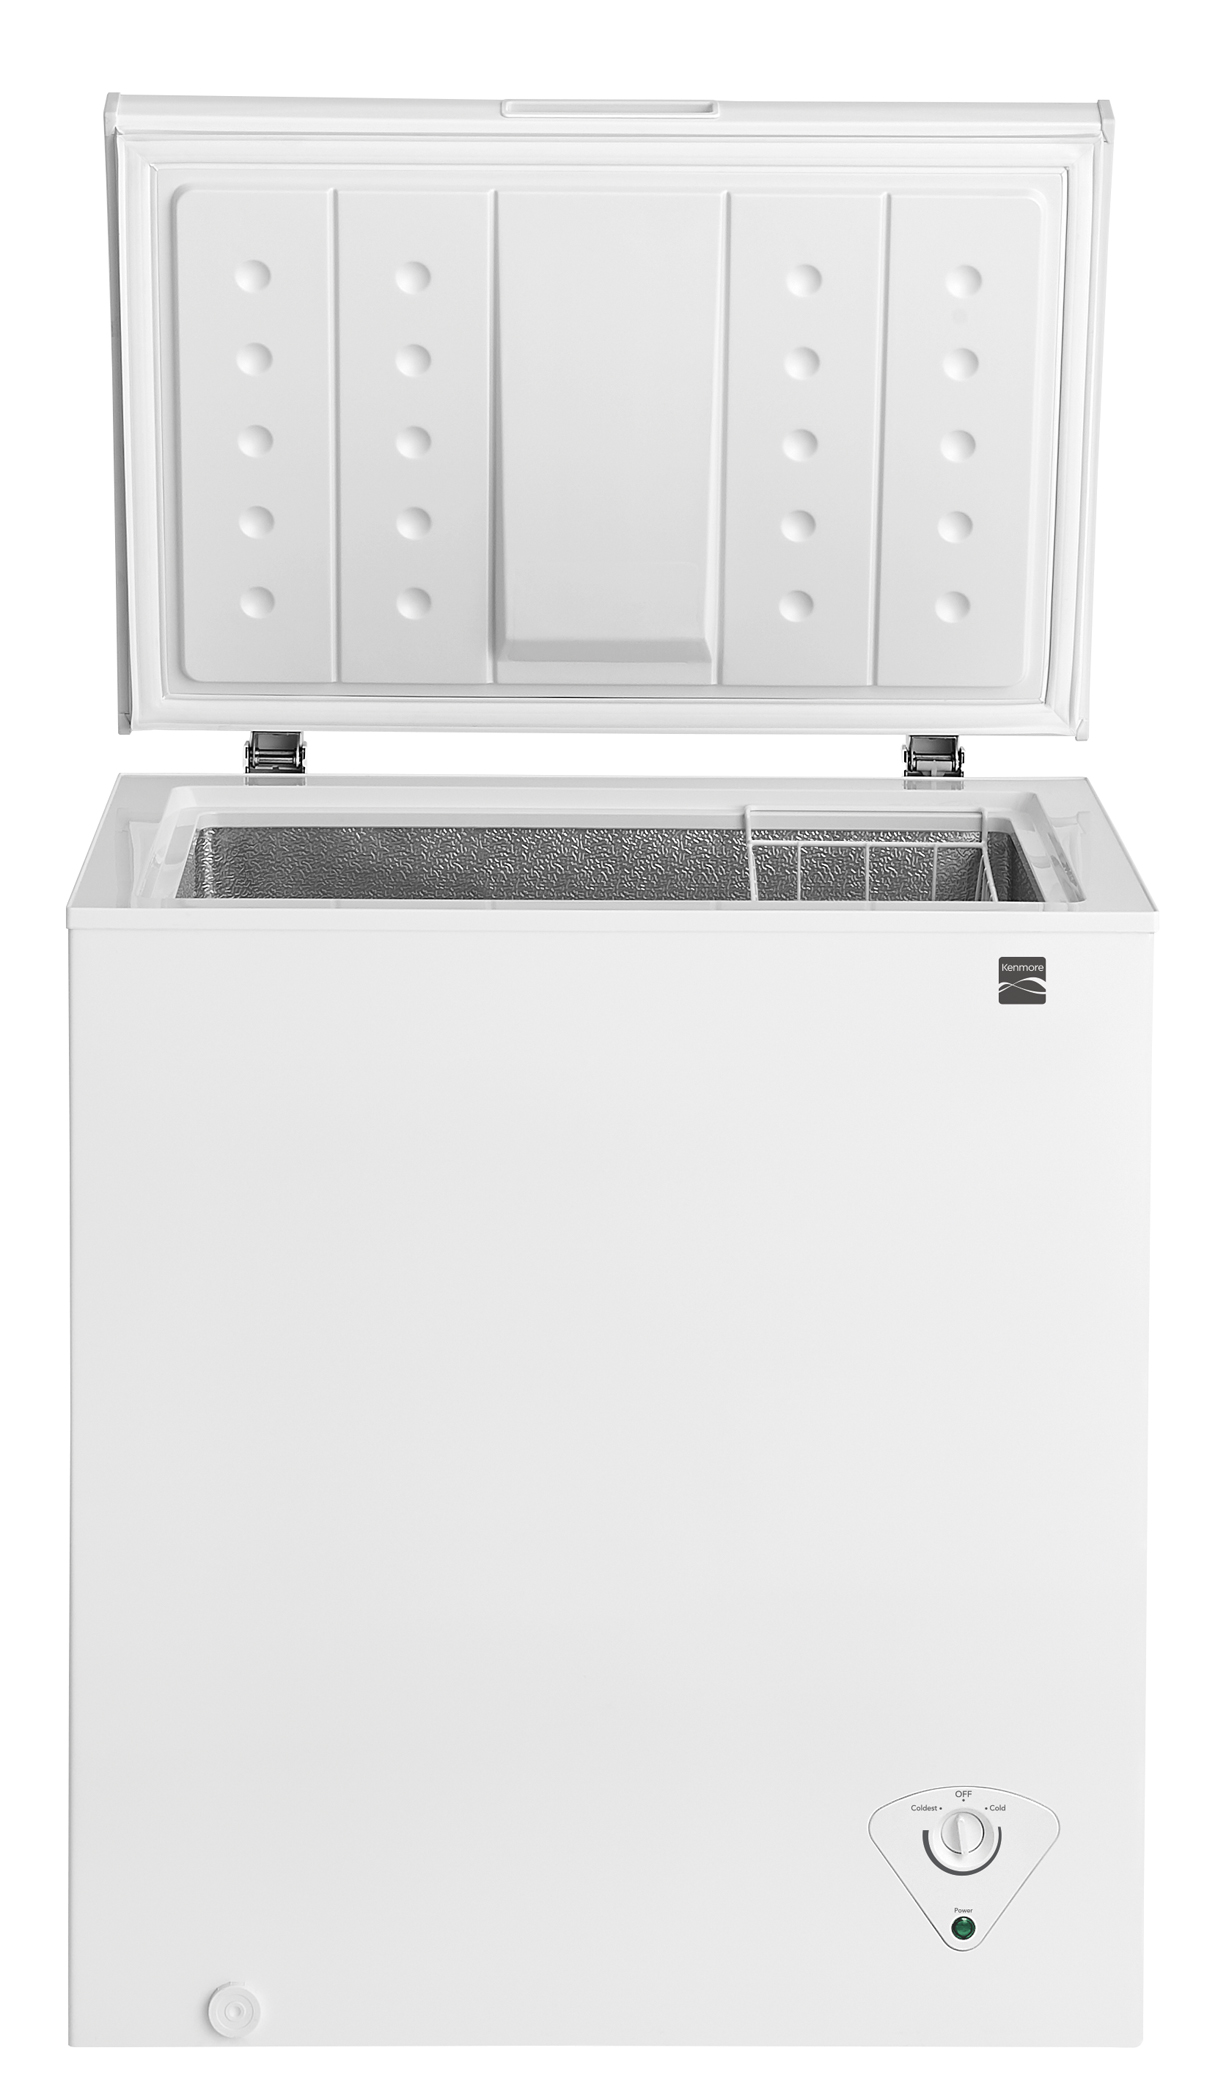 kenmore 17502 5 0 cu ft chest freezer white [ 1218 x 2100 Pixel ]